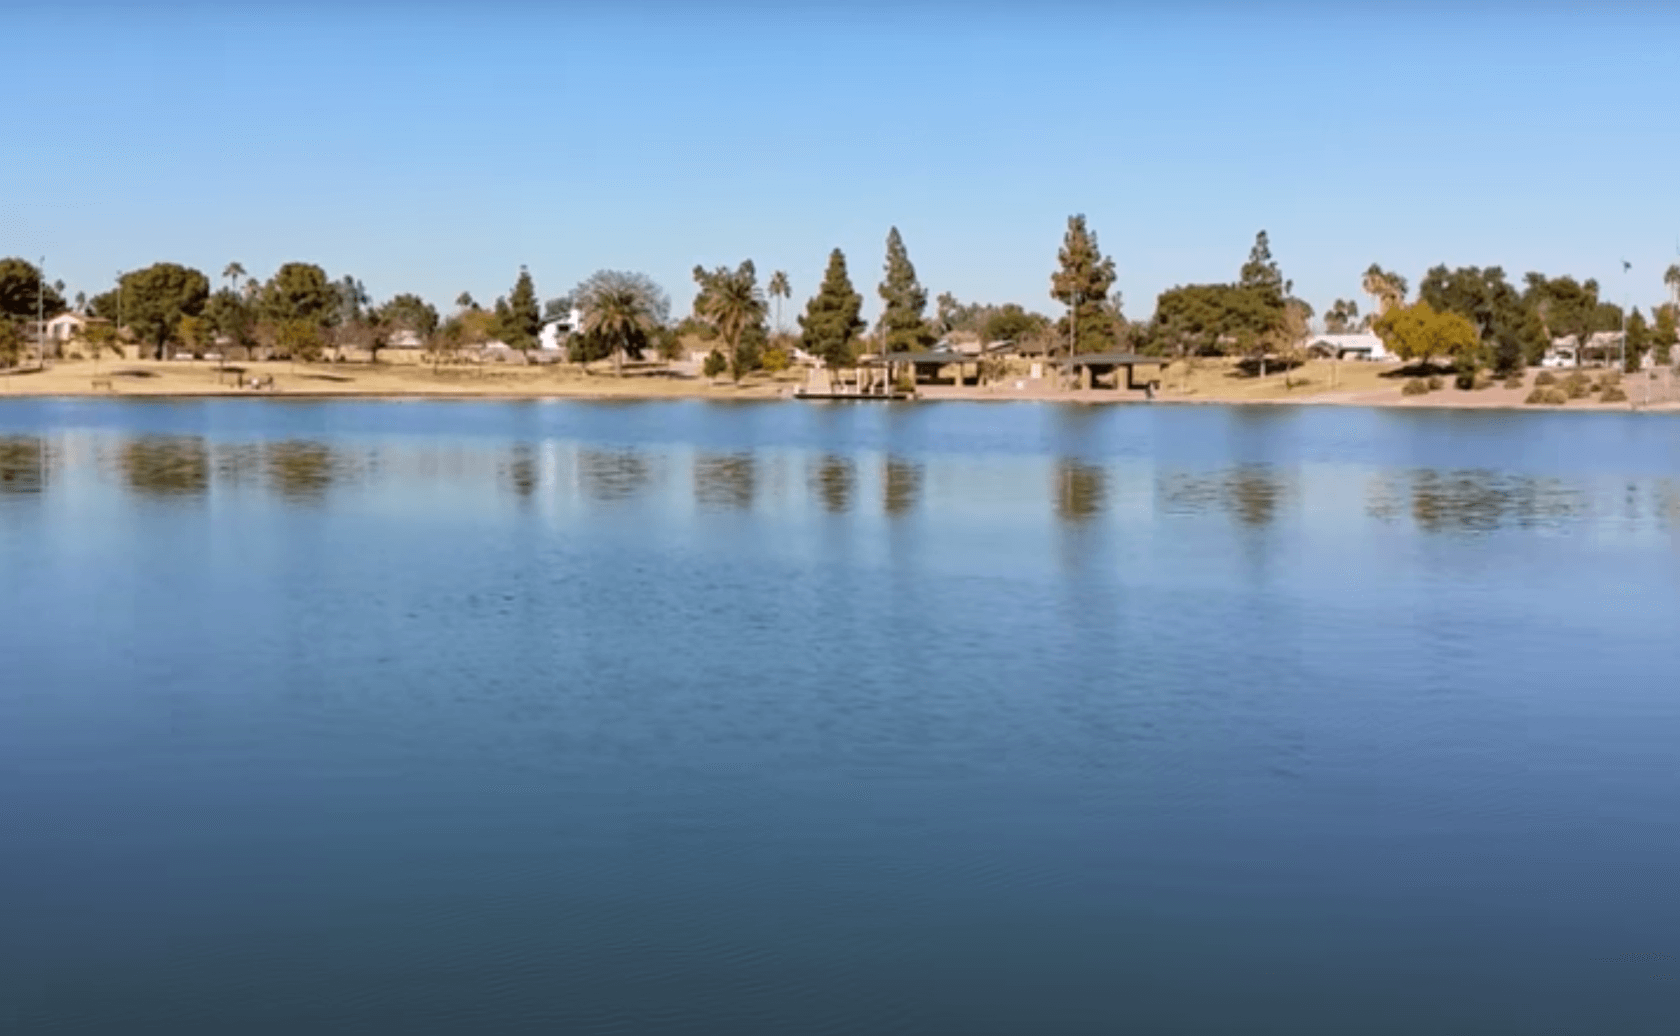 Kiwanis-Lake-Fishing-Guide-Tempe-AZ-04